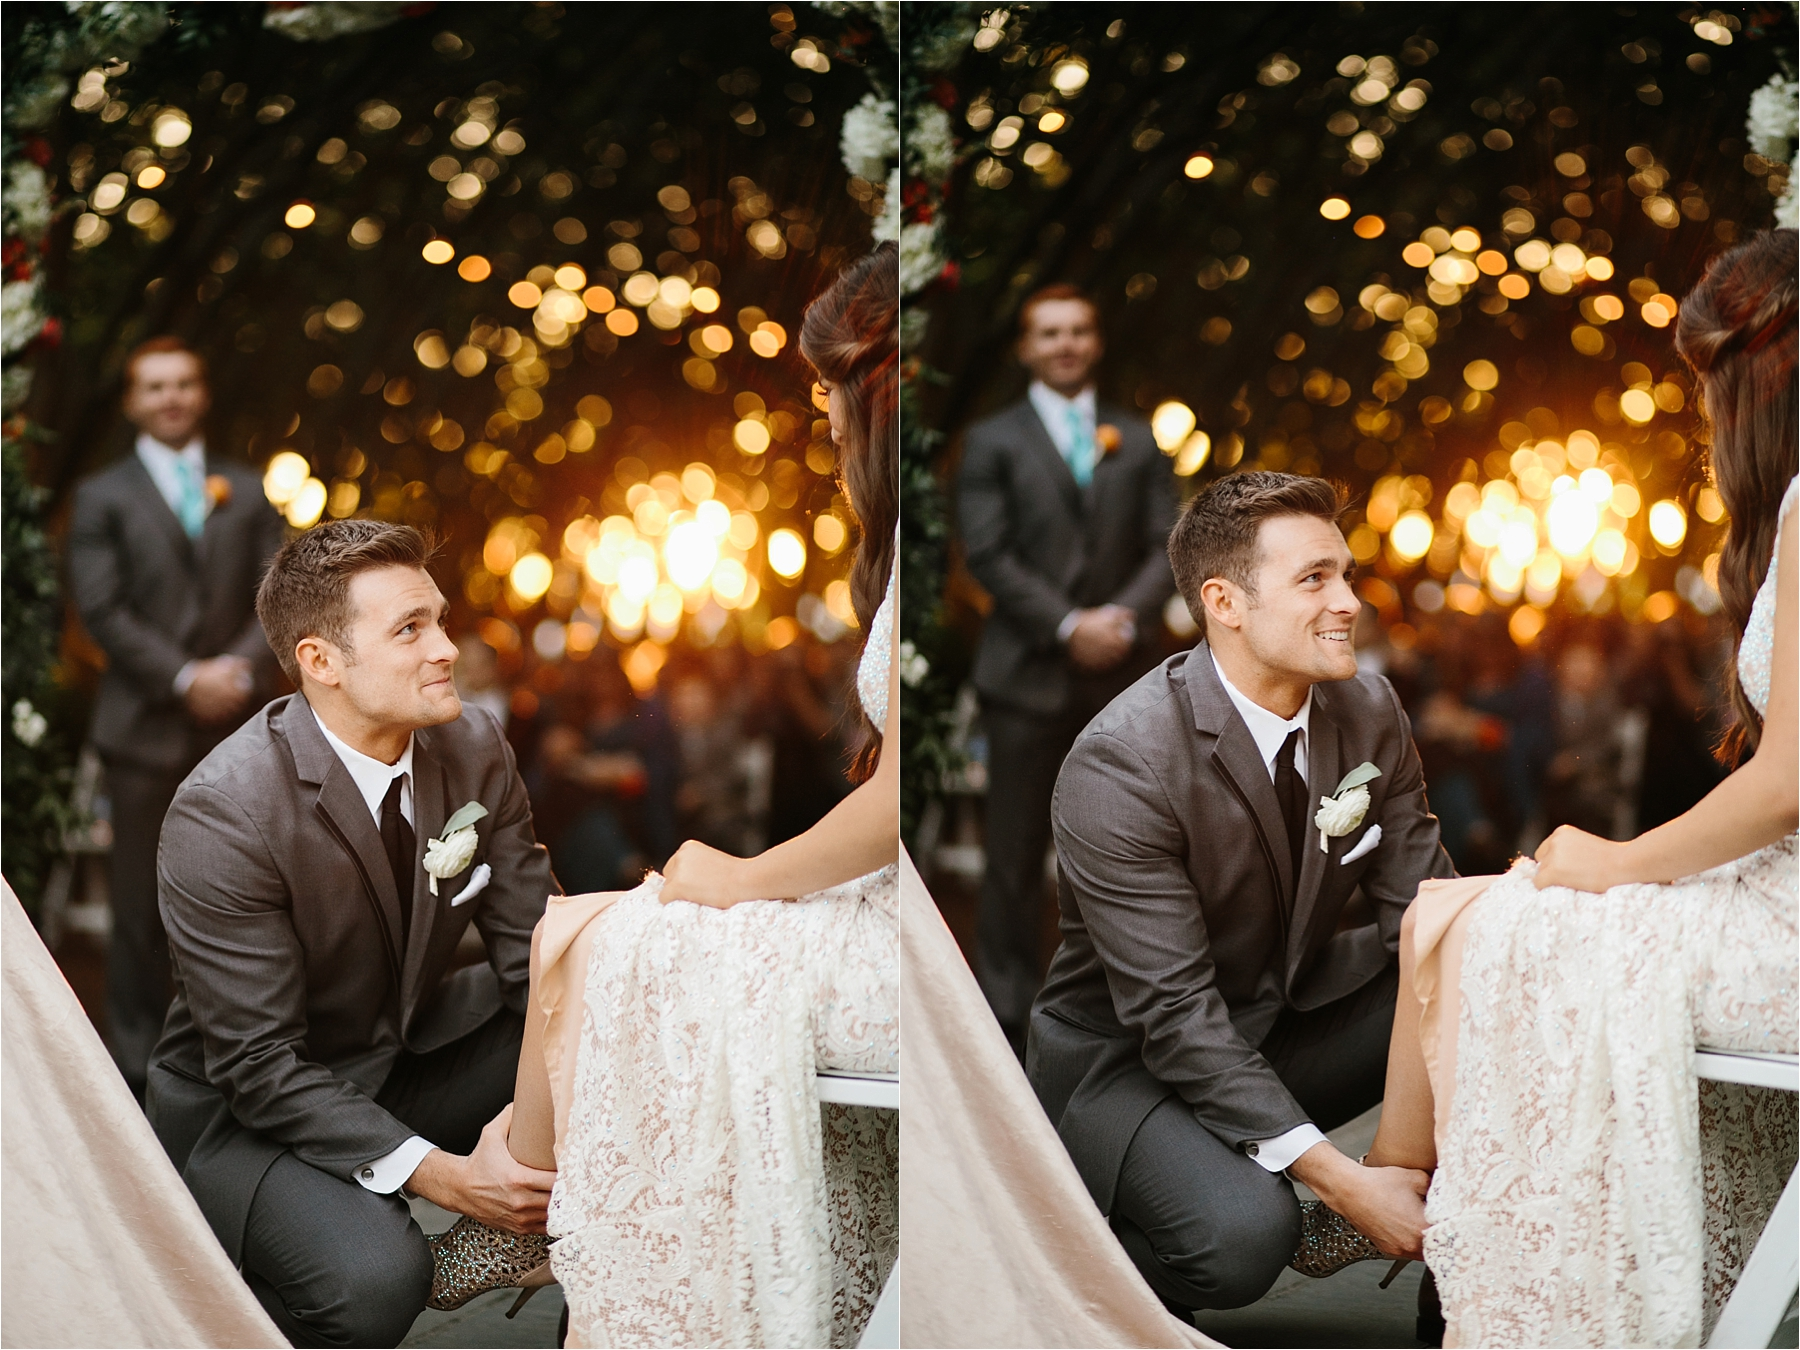 Devyn + Caden __ a Dallas Arboretum Garden Style Wedding by North Texas Wedding Photographer Rachel Meagan Photography __ 100